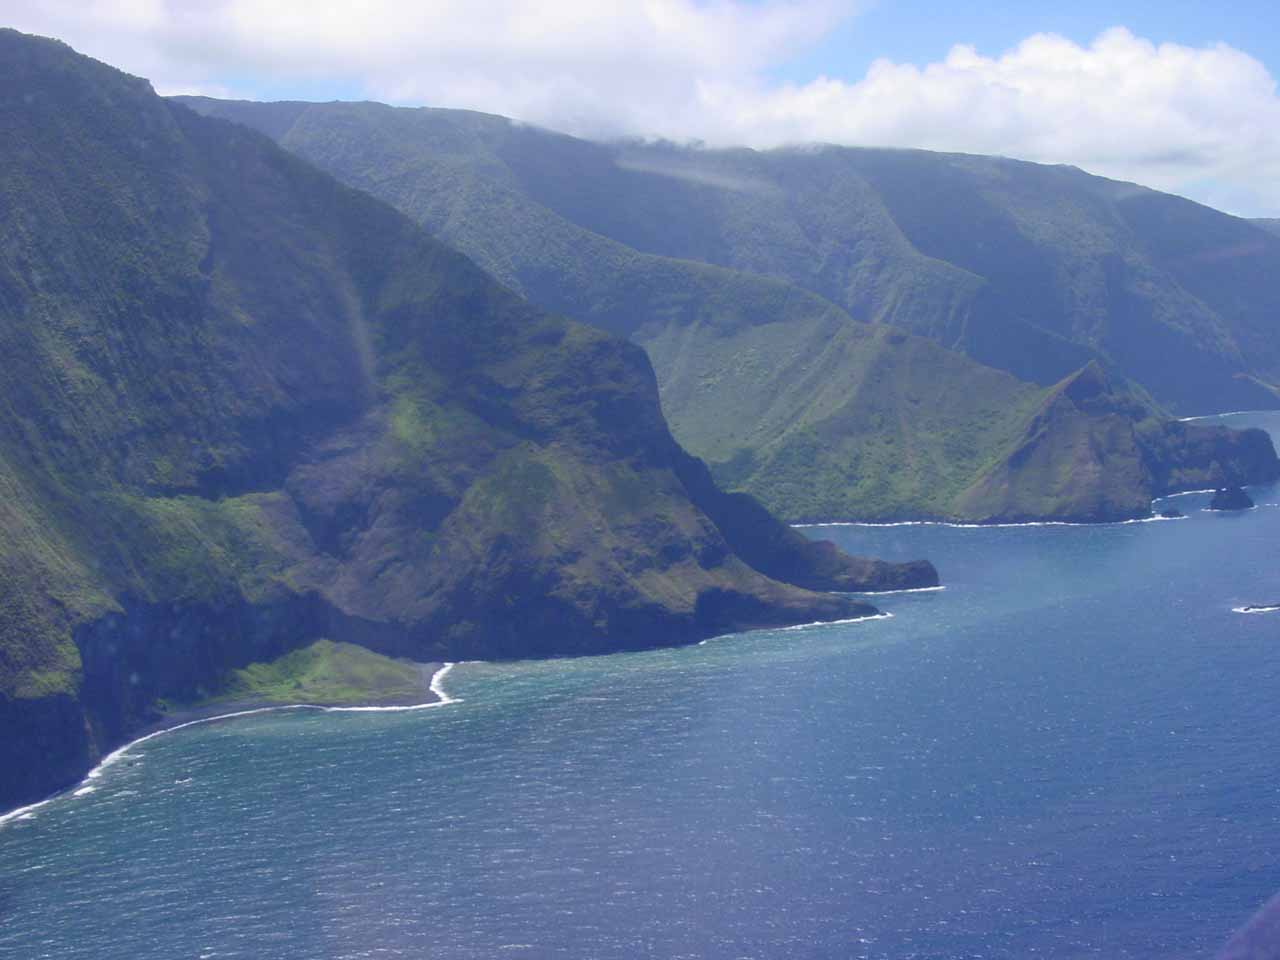 The sea cliffs of Molokai with glare through the side window clearly visible on the water